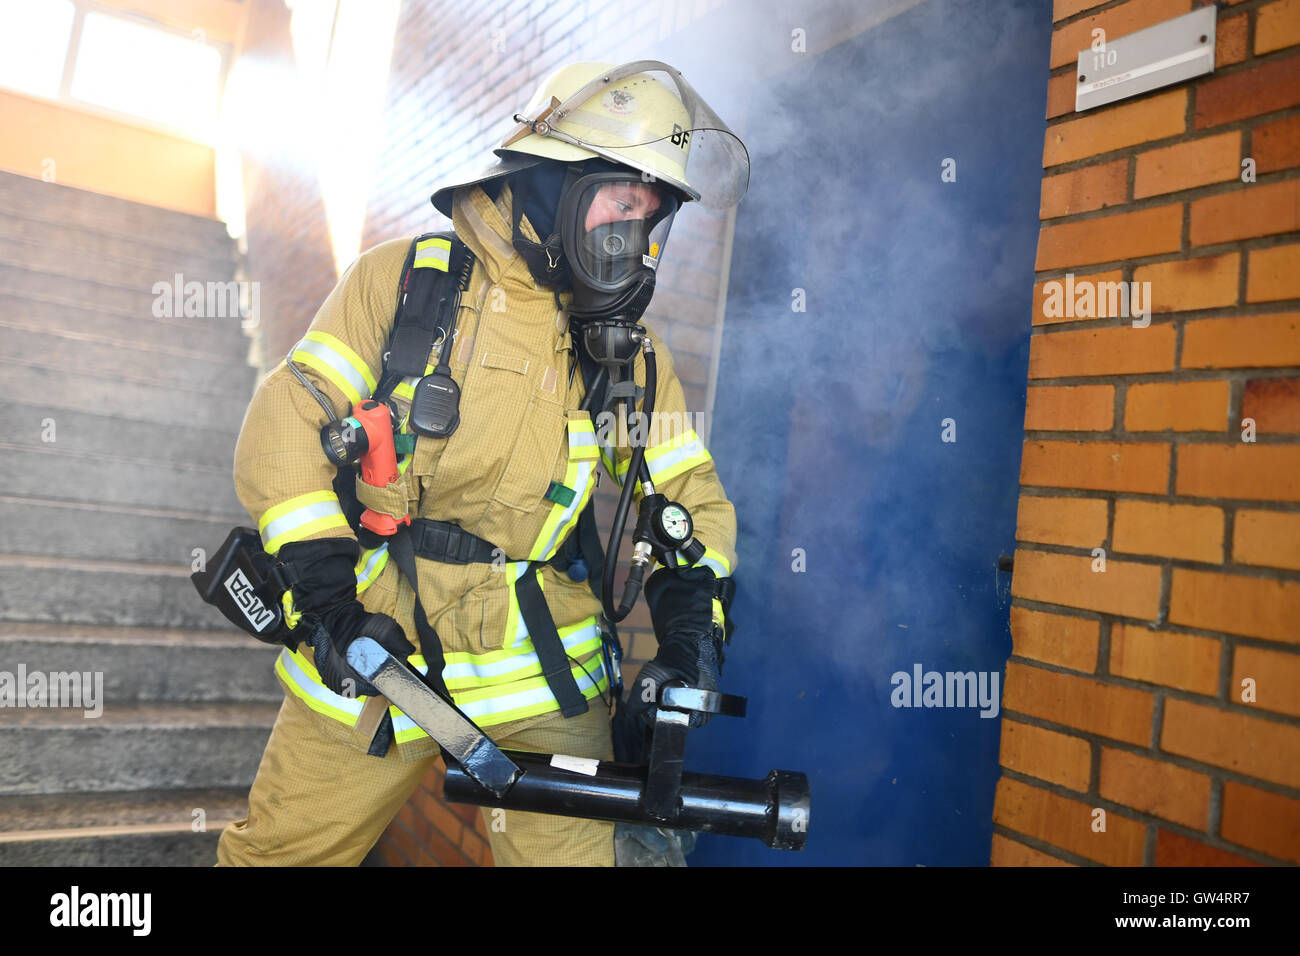 Mannheim, Germany. 24th Aug, 2016. Firewoman Lisa-Katharina Roeck shows how to open a door with a ram at the southern - Stock Image